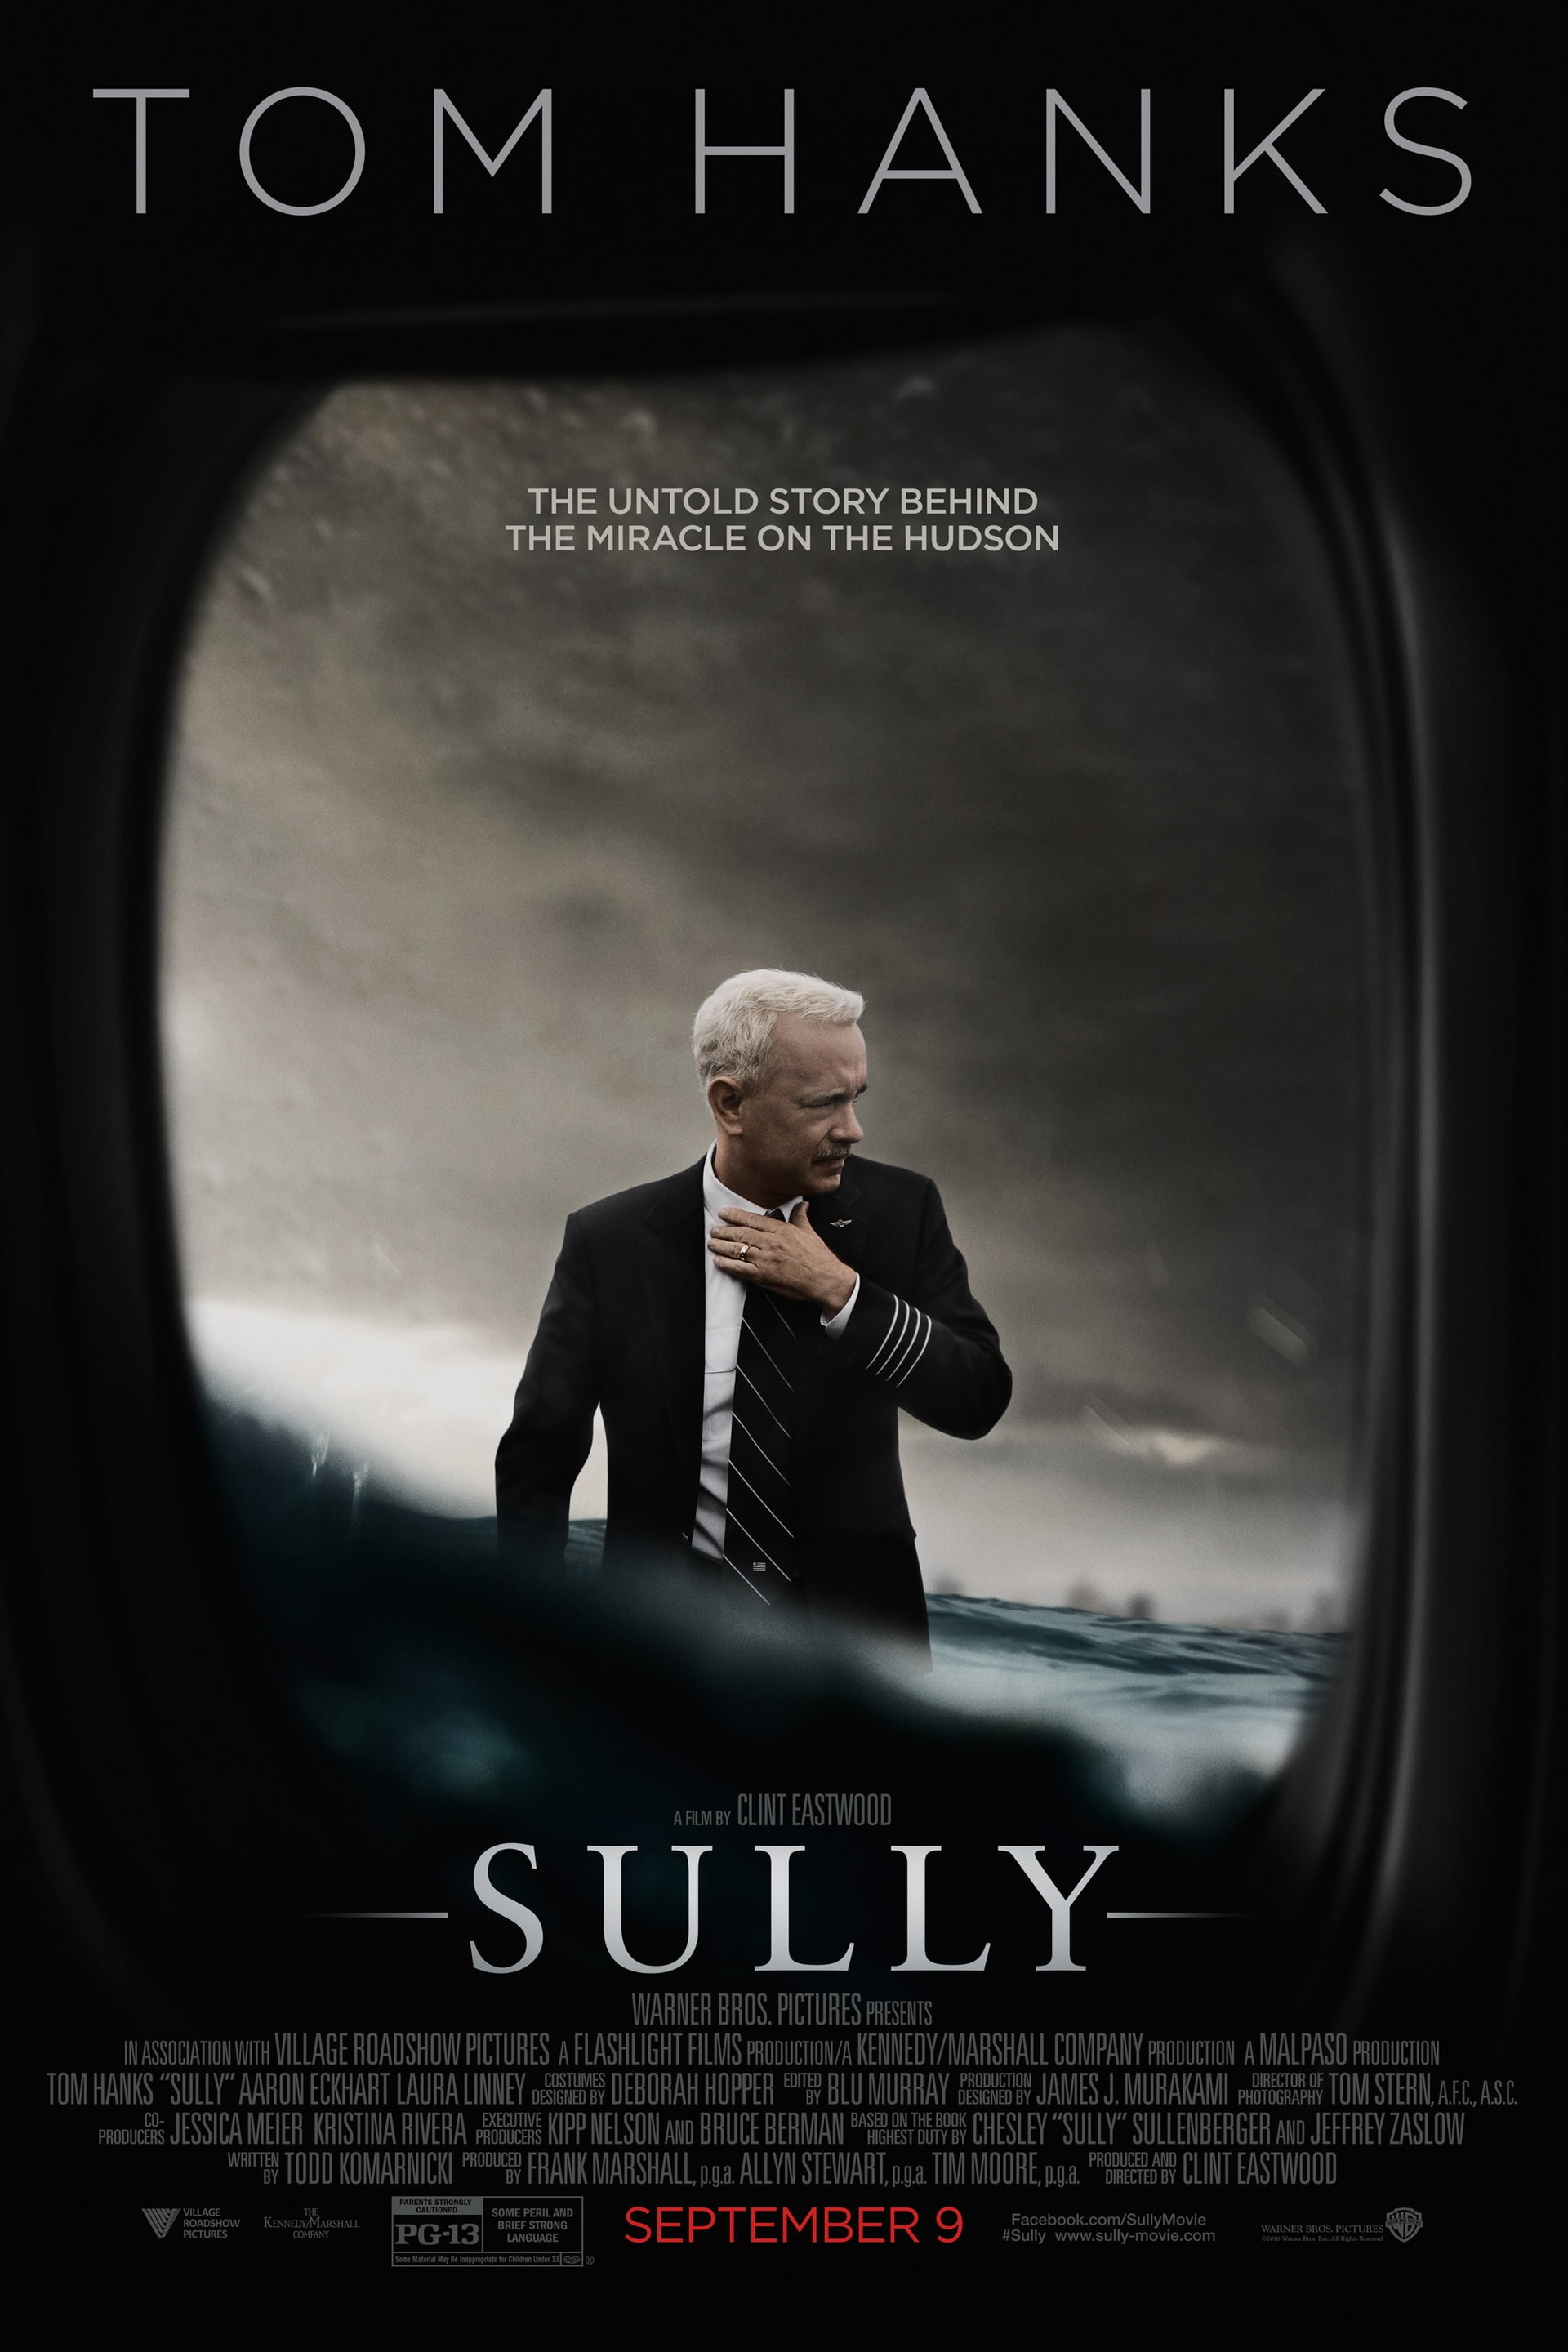 Sully poster with Tom Hanks as Captain Sully